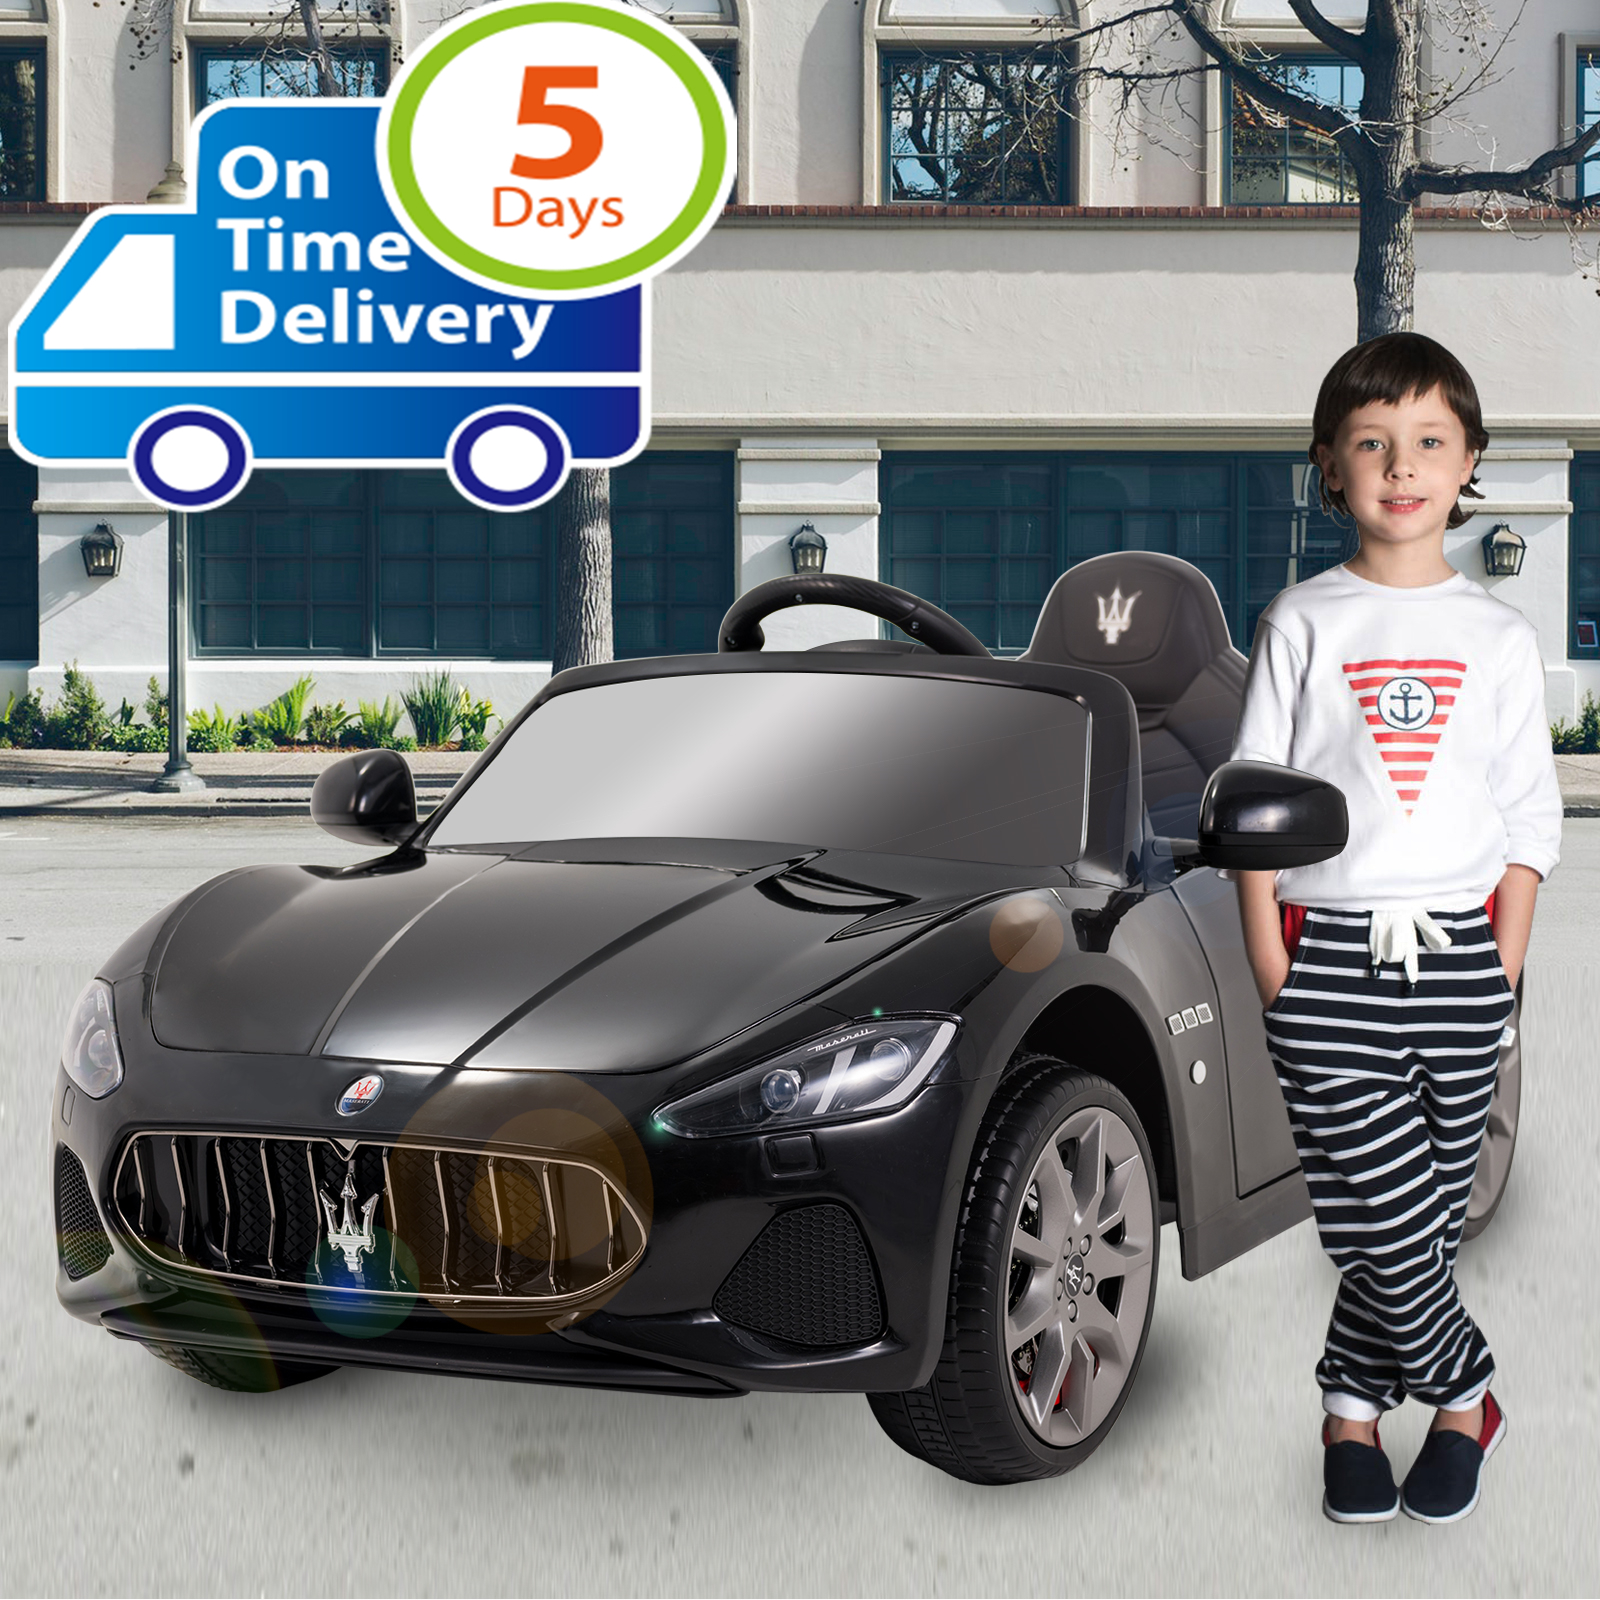 US $179 99 10% OFF|Uenjoy 12V Electric Kids Ride On Cars Motorized Vehicles  W/Remote Control, Suspension with Mp3 Player, Light-in Ride On Cars from